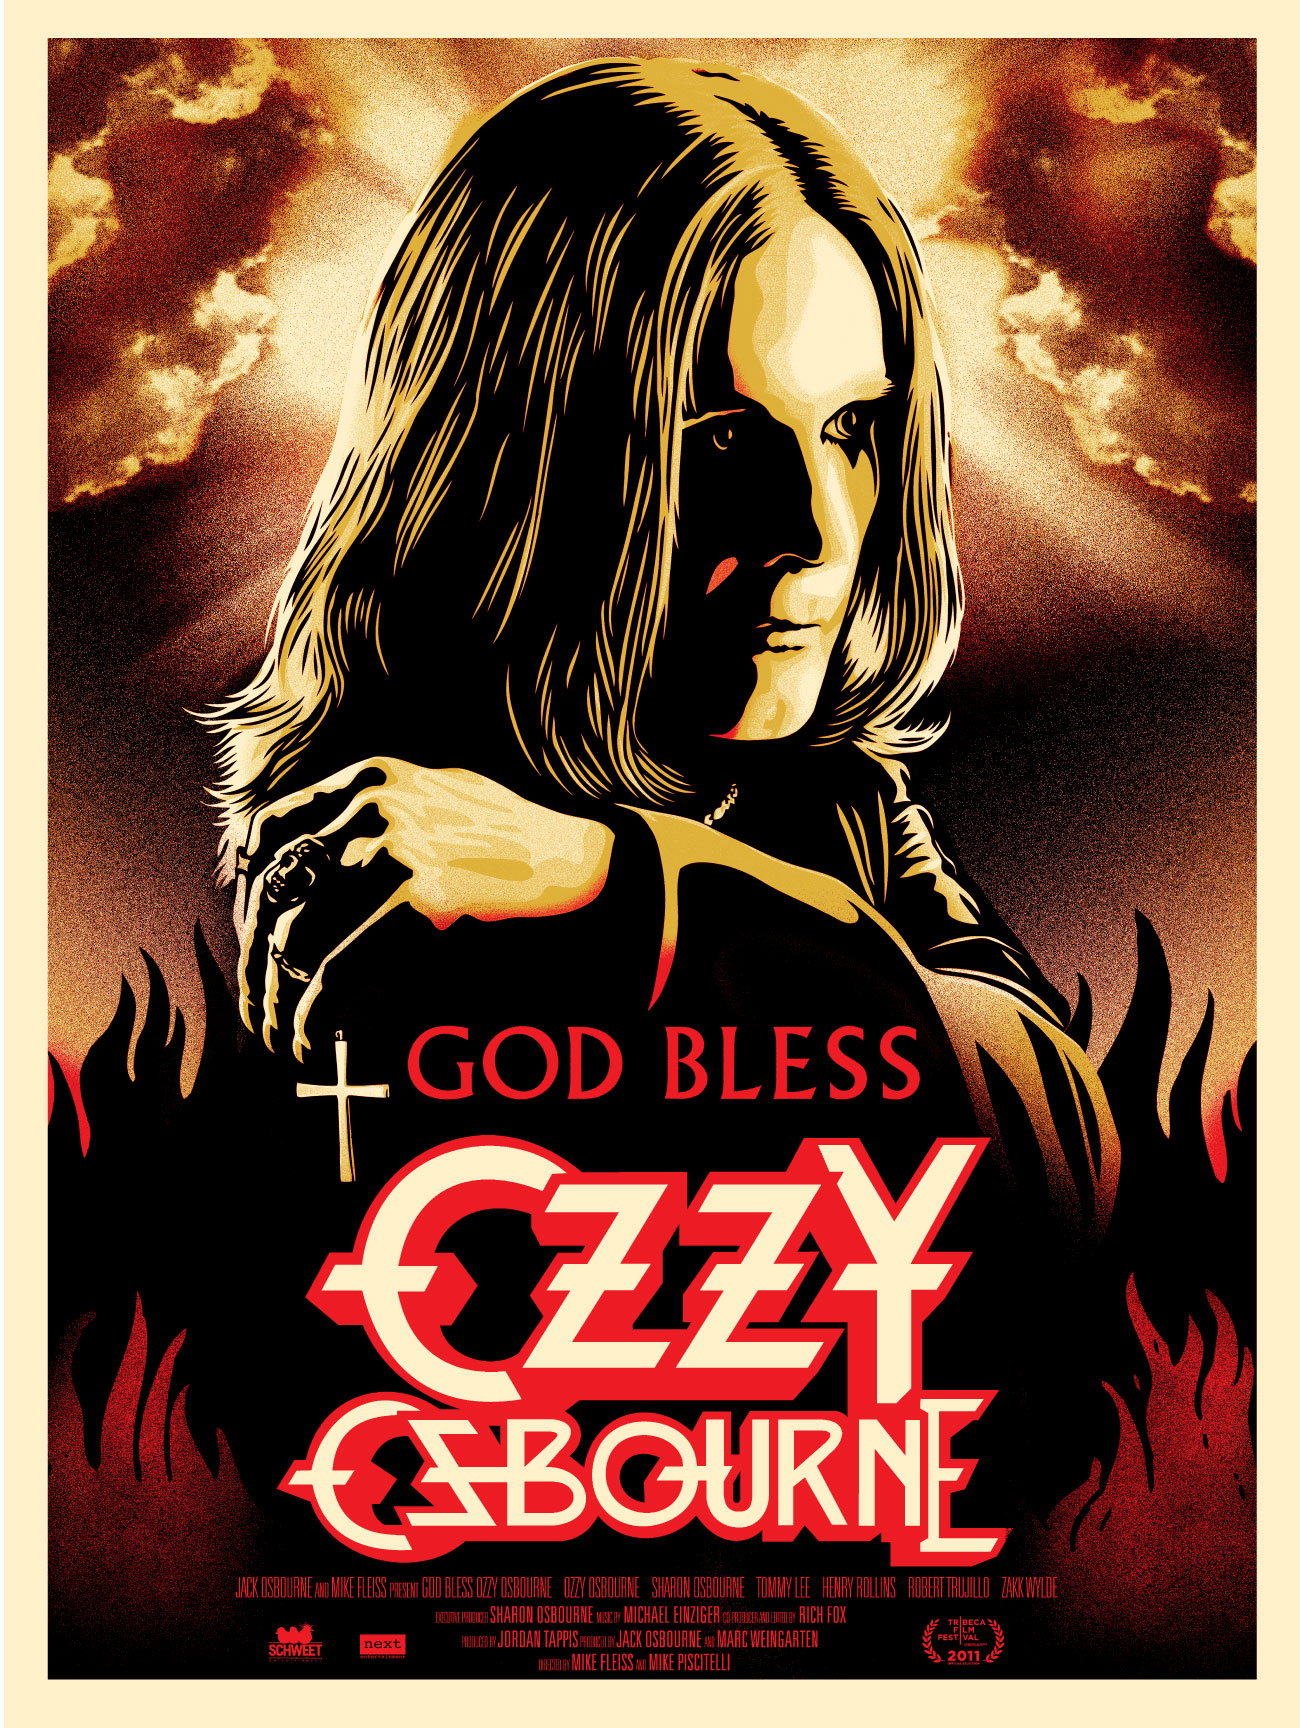 fairey god bless ozzy osbourne